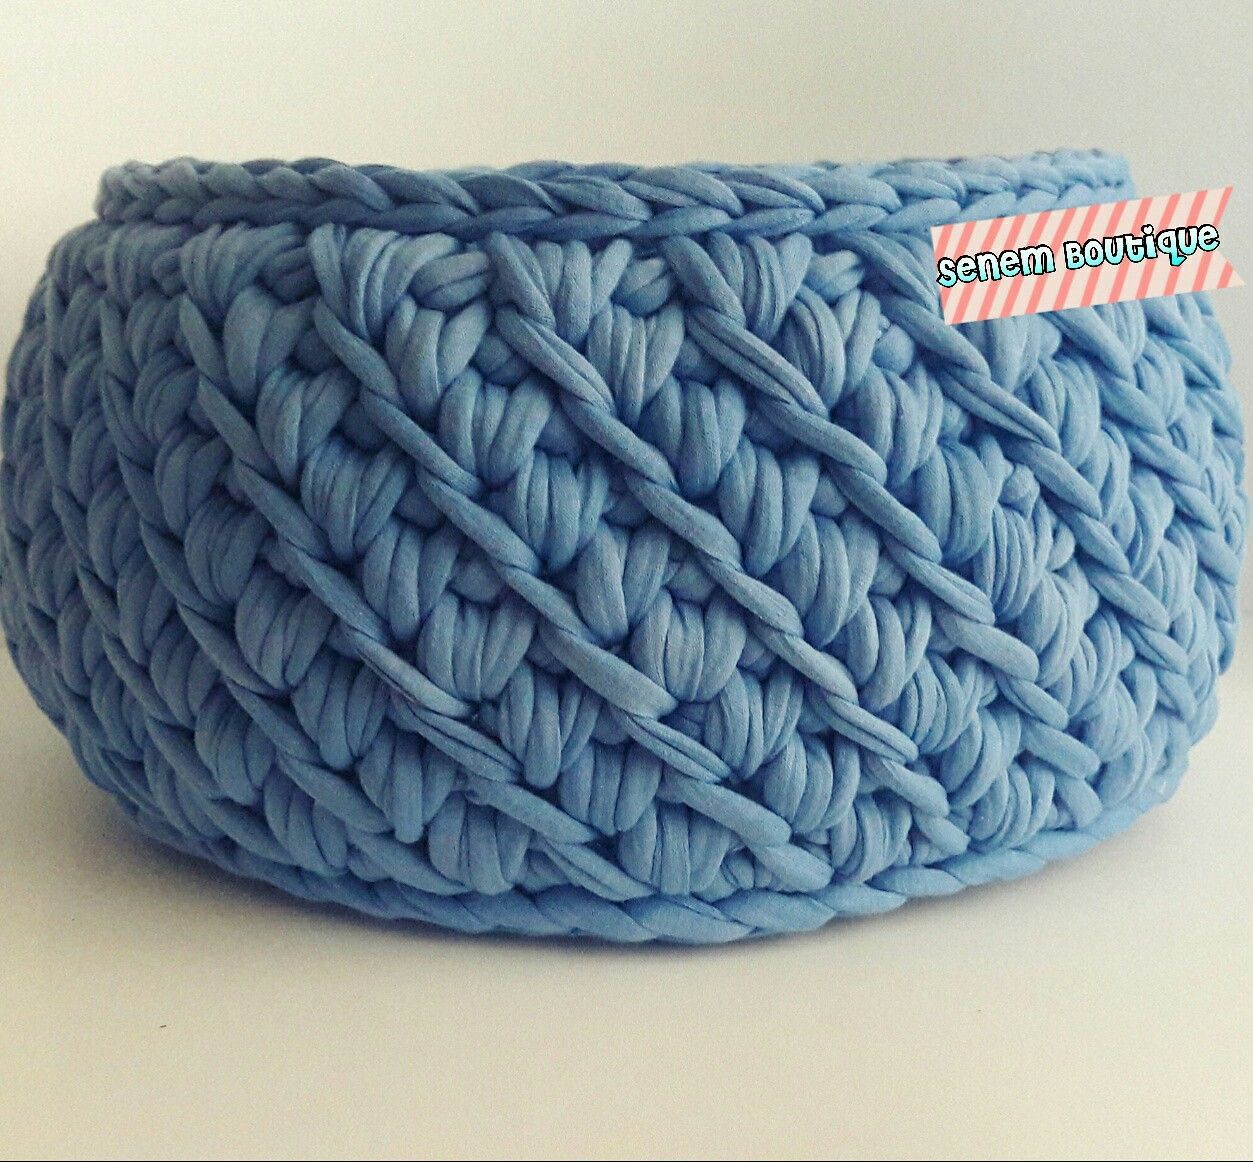 T SHIRT YARN BASKET - Crocheting Journal | Crochet ...